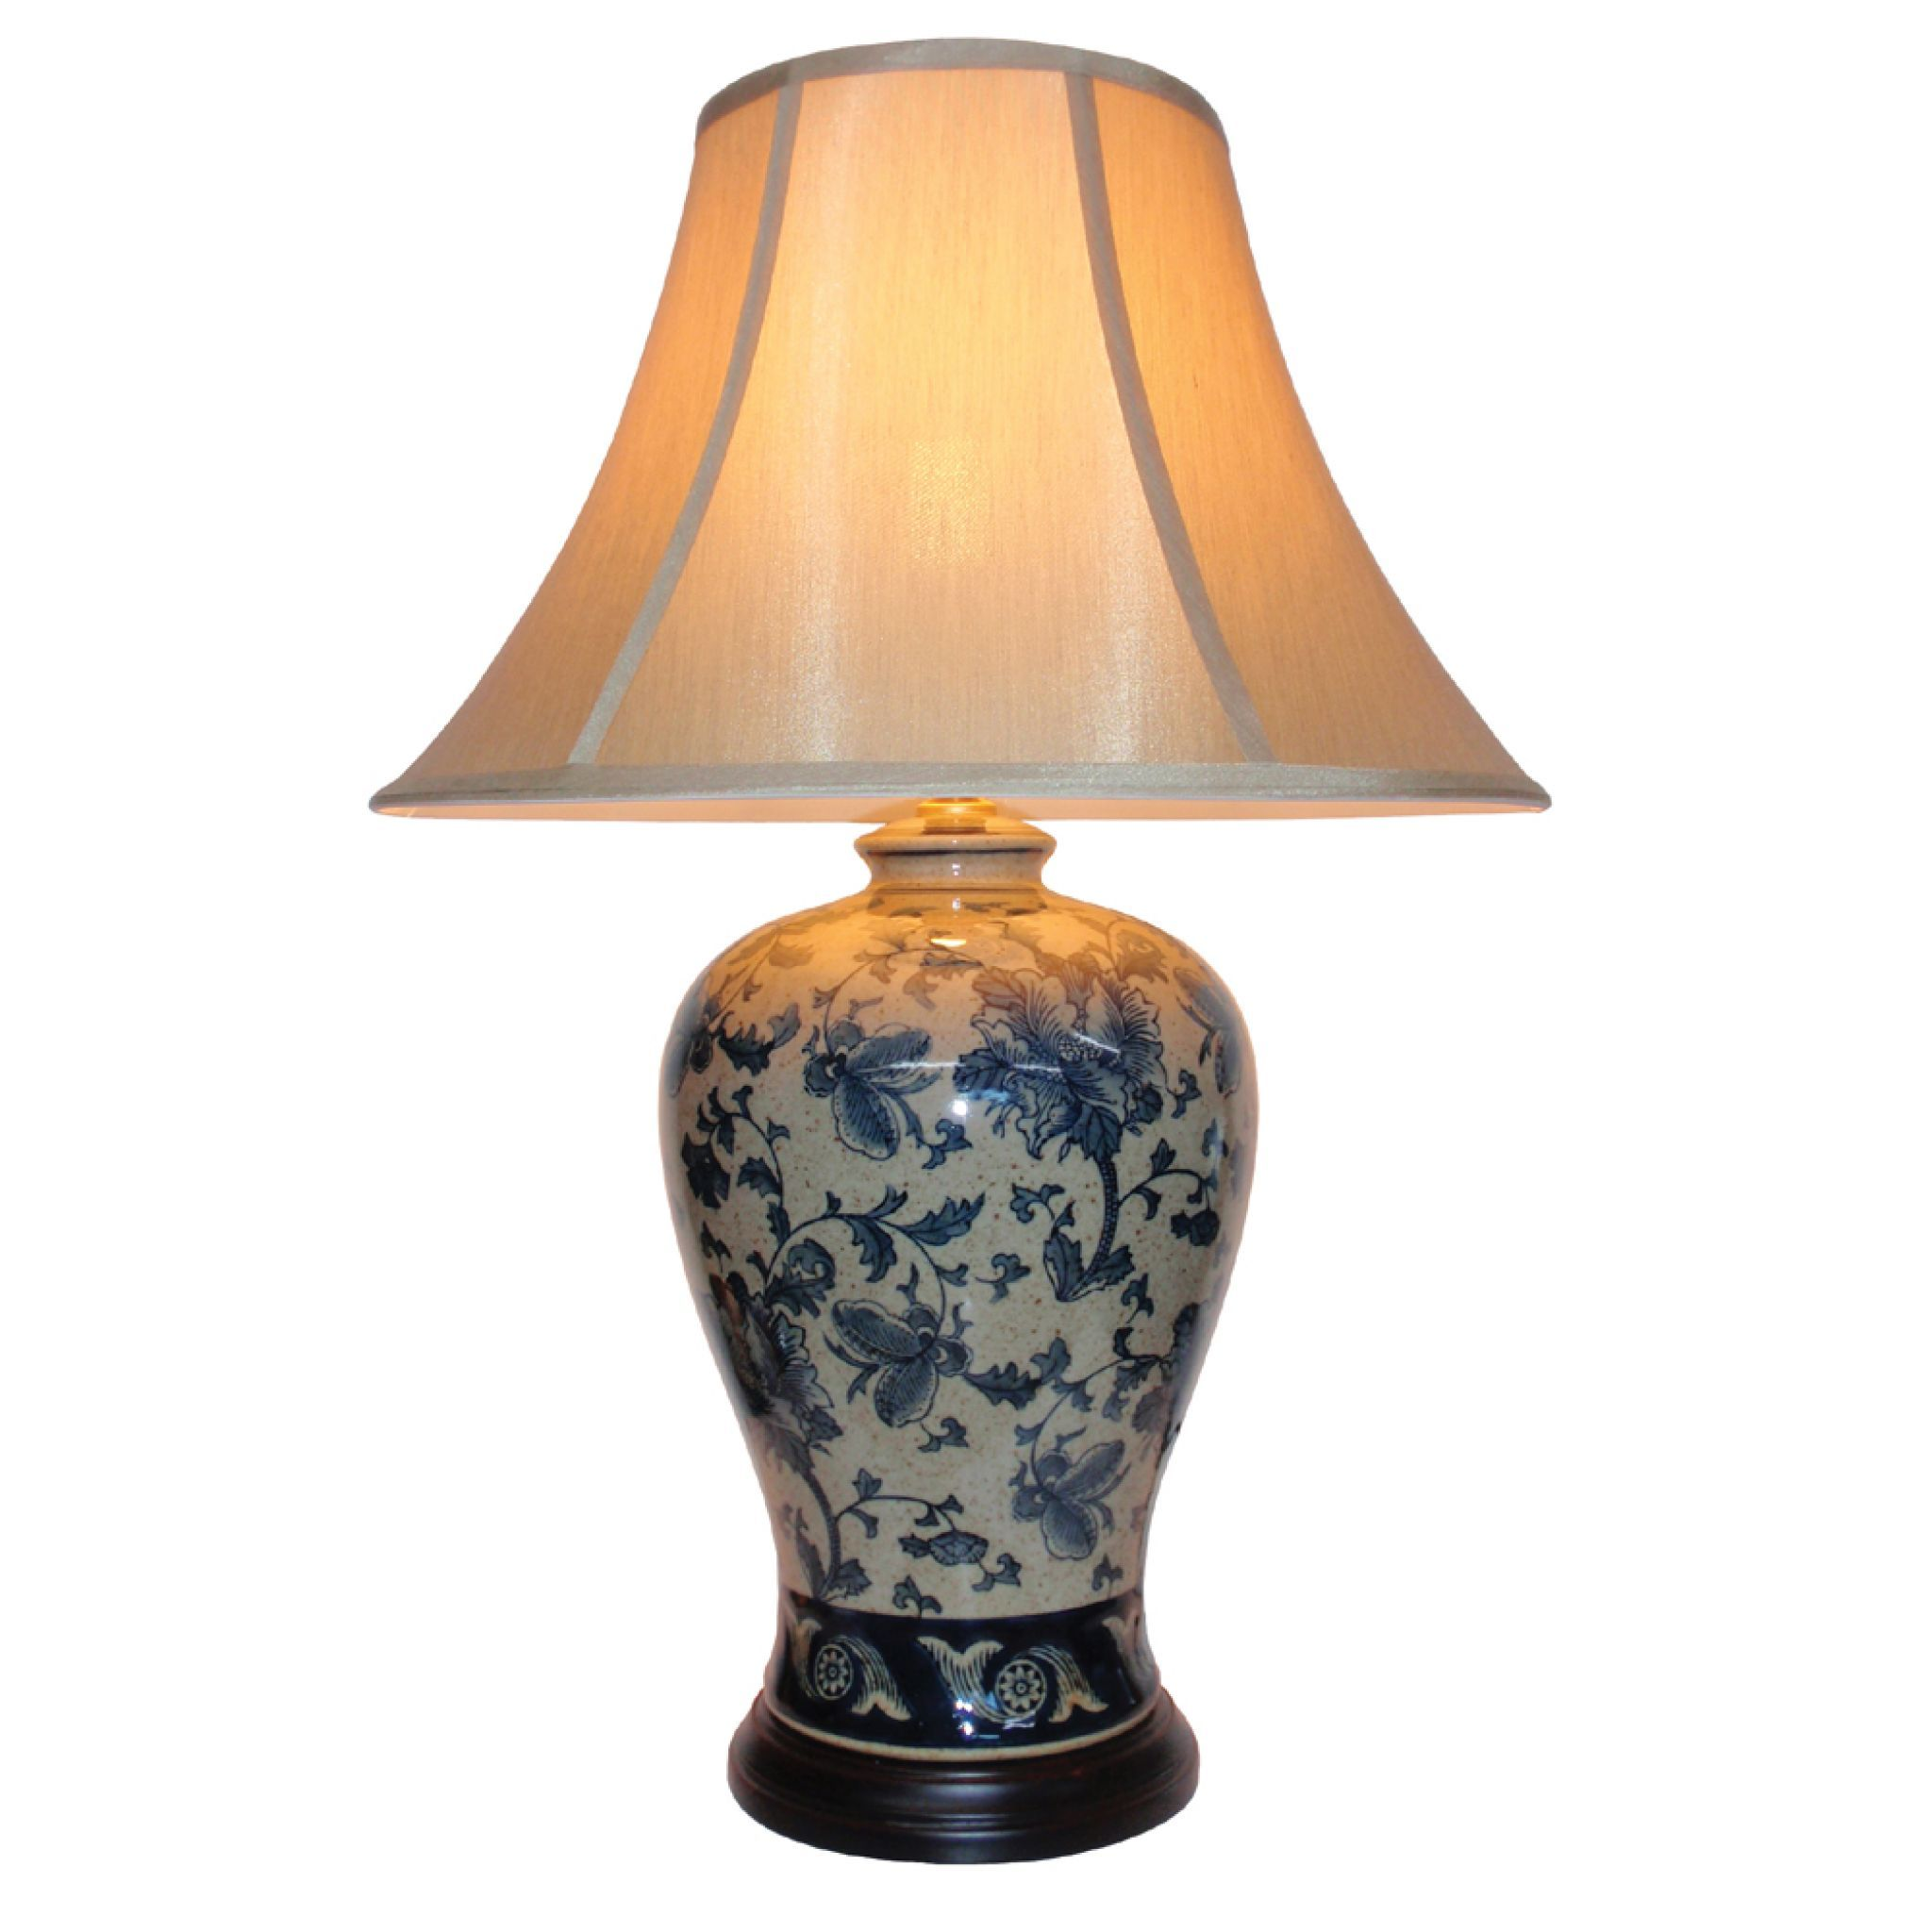 table touch glass lamps lamp ore white brushed dp floral gold amazon international com